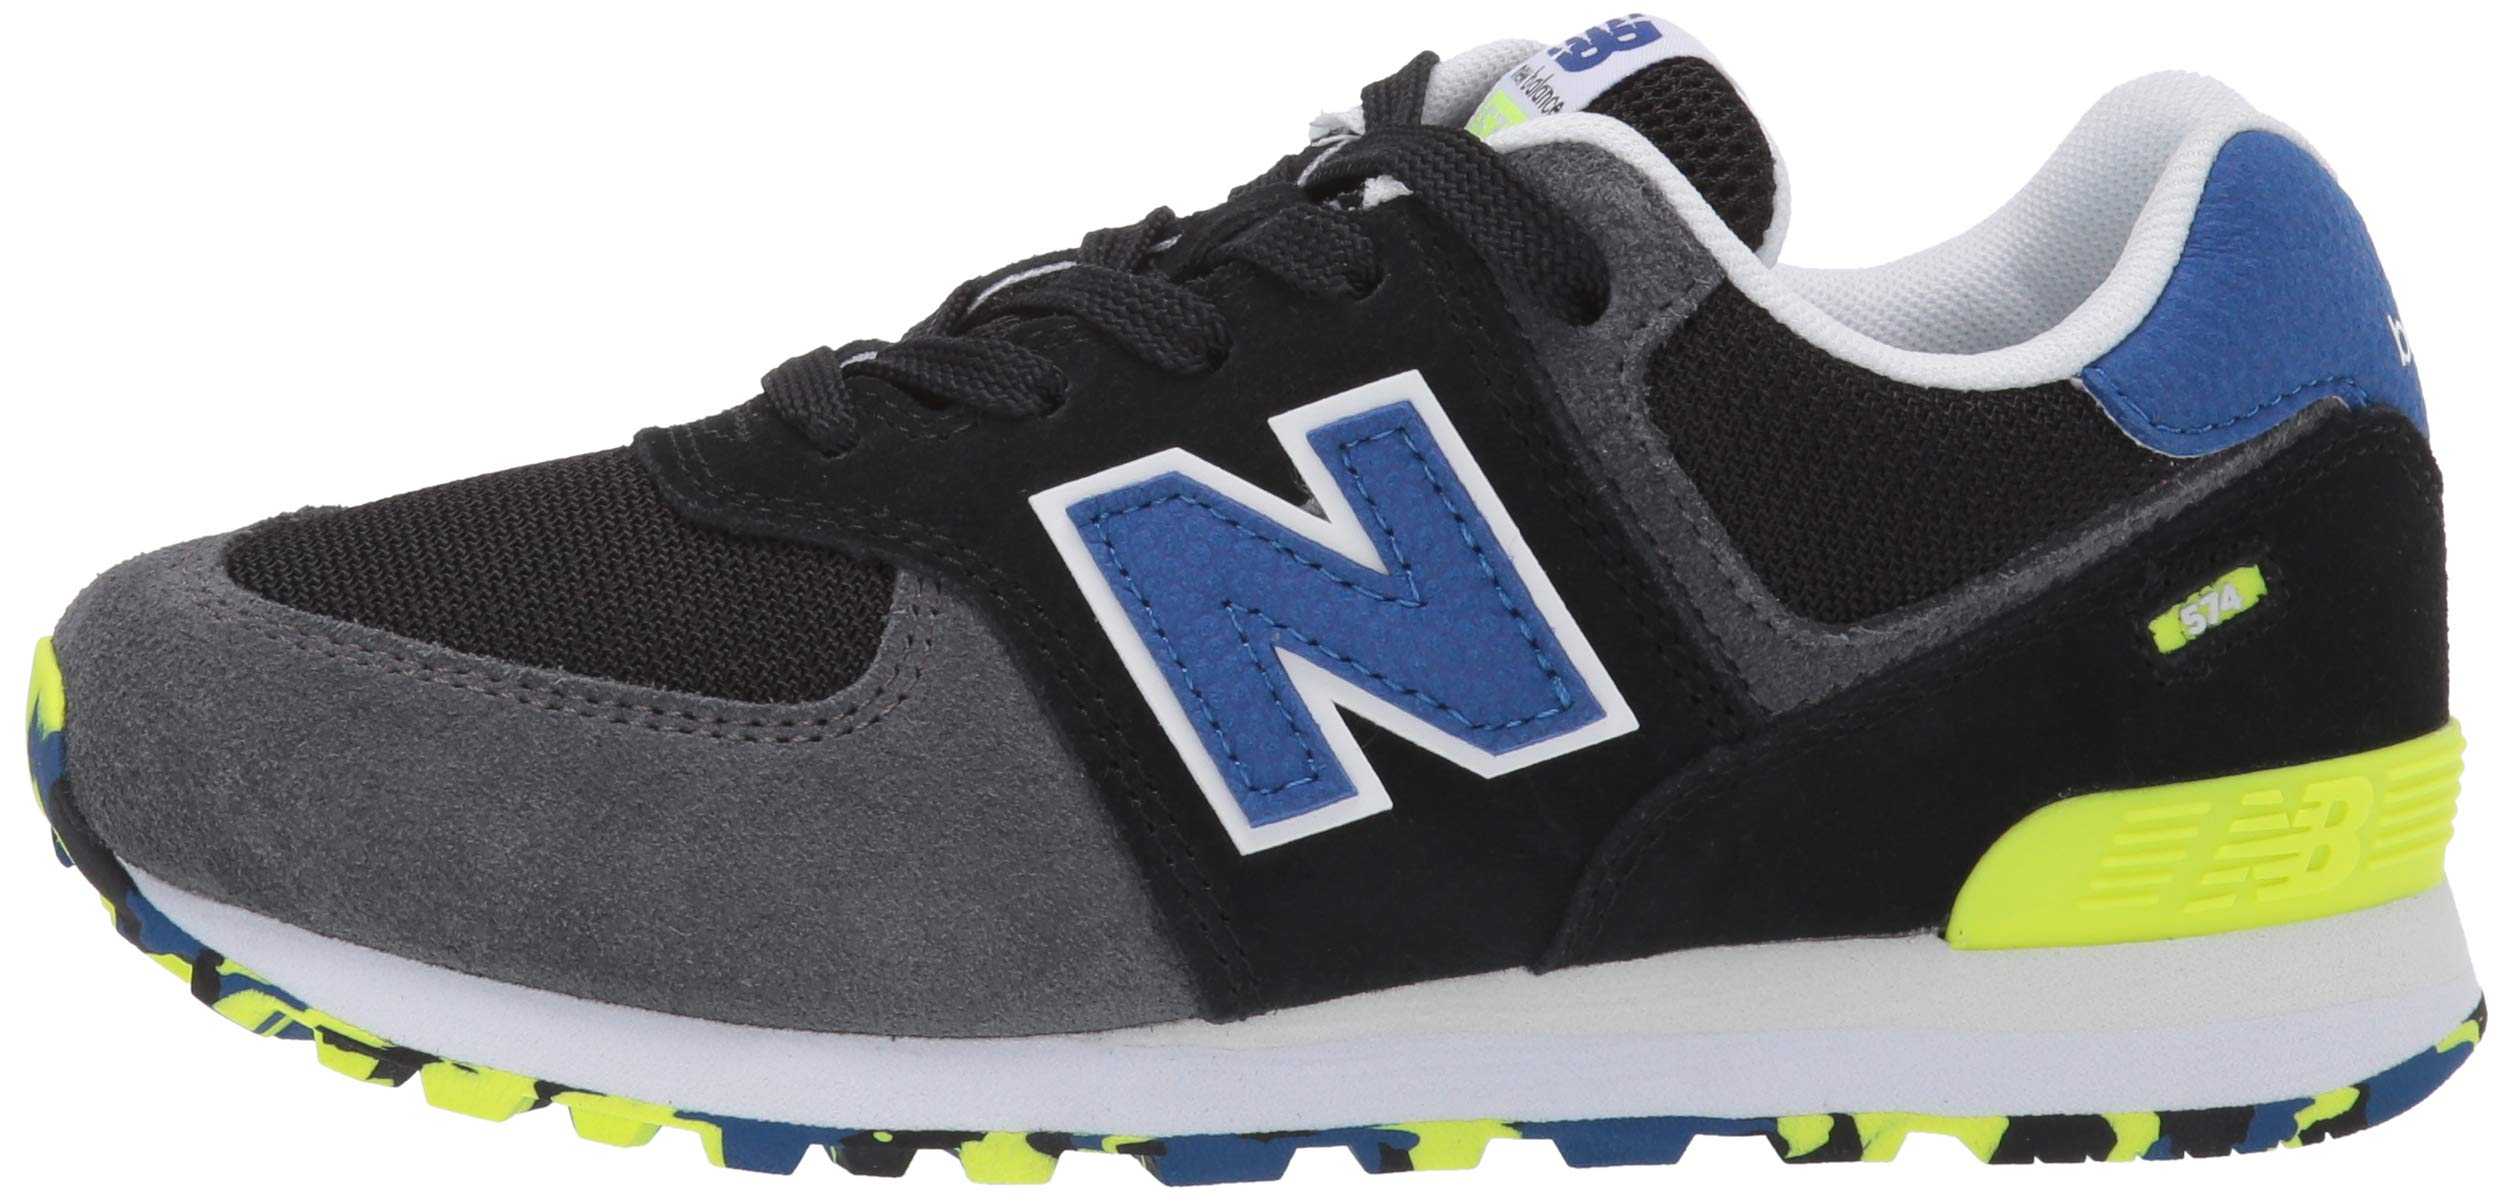 New Balance Boys' Iconic 574 Sneaker Black/Royal Blue 4.5 M US Big Kid by New Balance (Image #5)